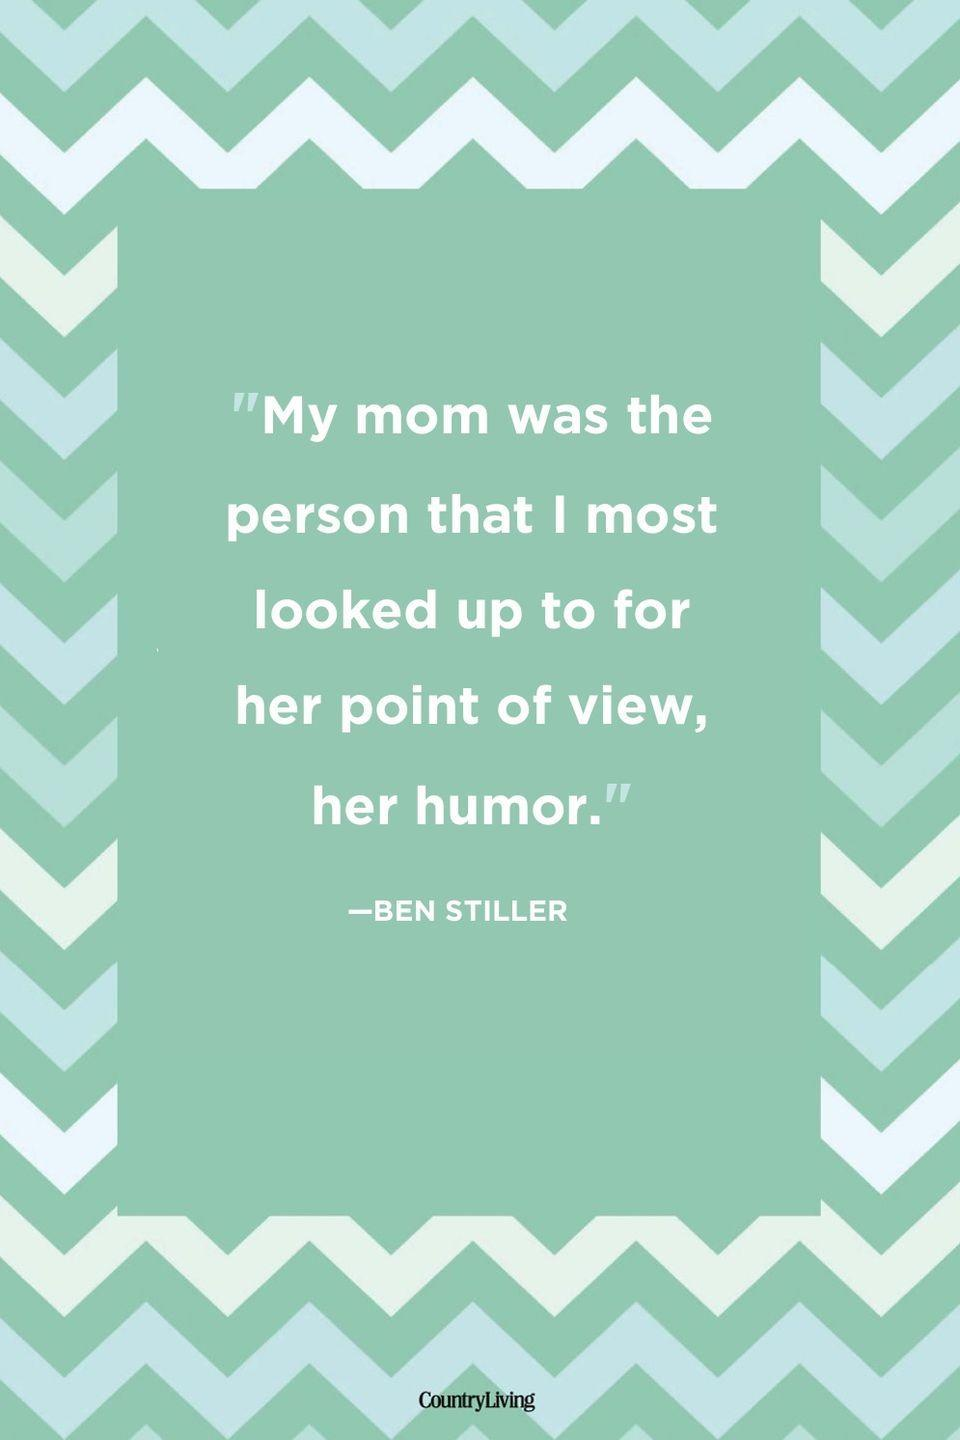 "<p>""My mom was the person that I most looked up to for her point of view, her humor.""</p>"